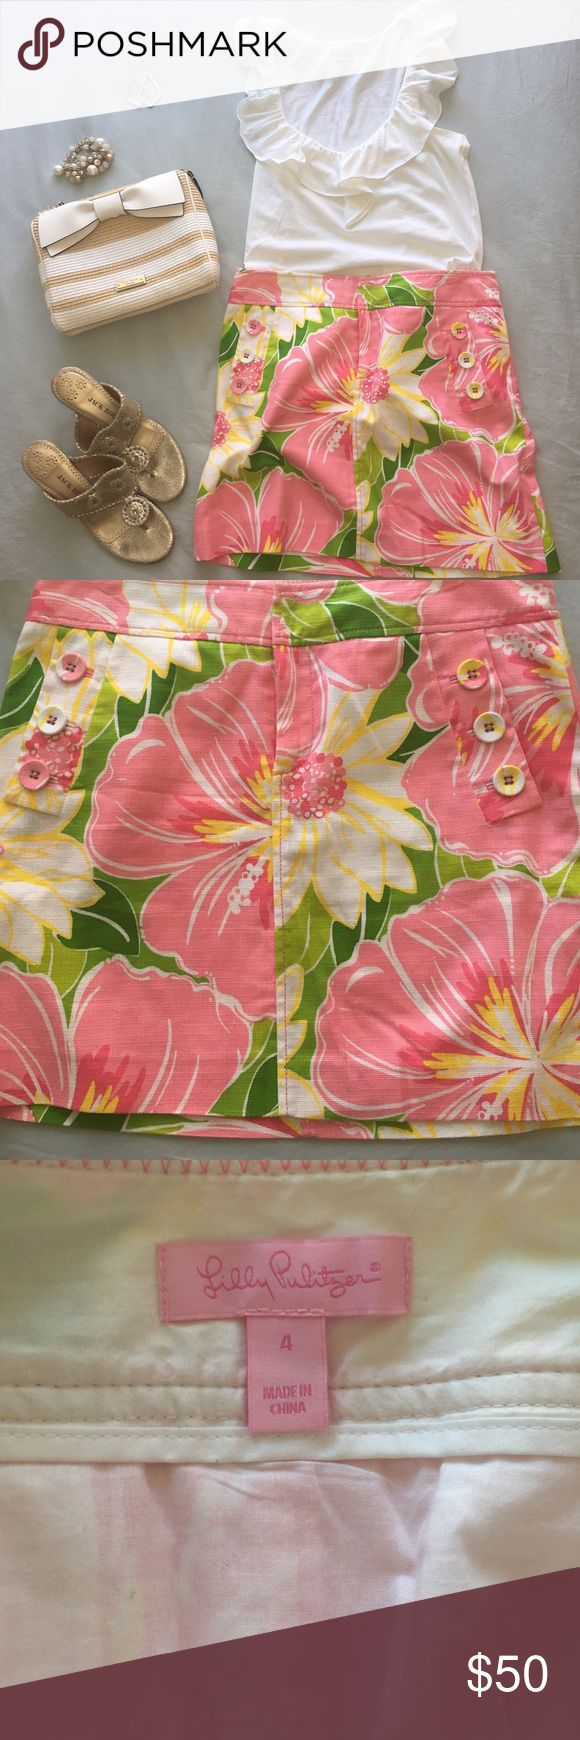 Lilly Pulitzer tropical print linen skirt Gorgeous skirt in one of Lilly's most famously color combos- pink and green!  Great for country club lunches and Island vacations!  Older Lilly style fits similar to a 2 in more recent collections.  Make me an offer! Lilly Pulitzer Skirts